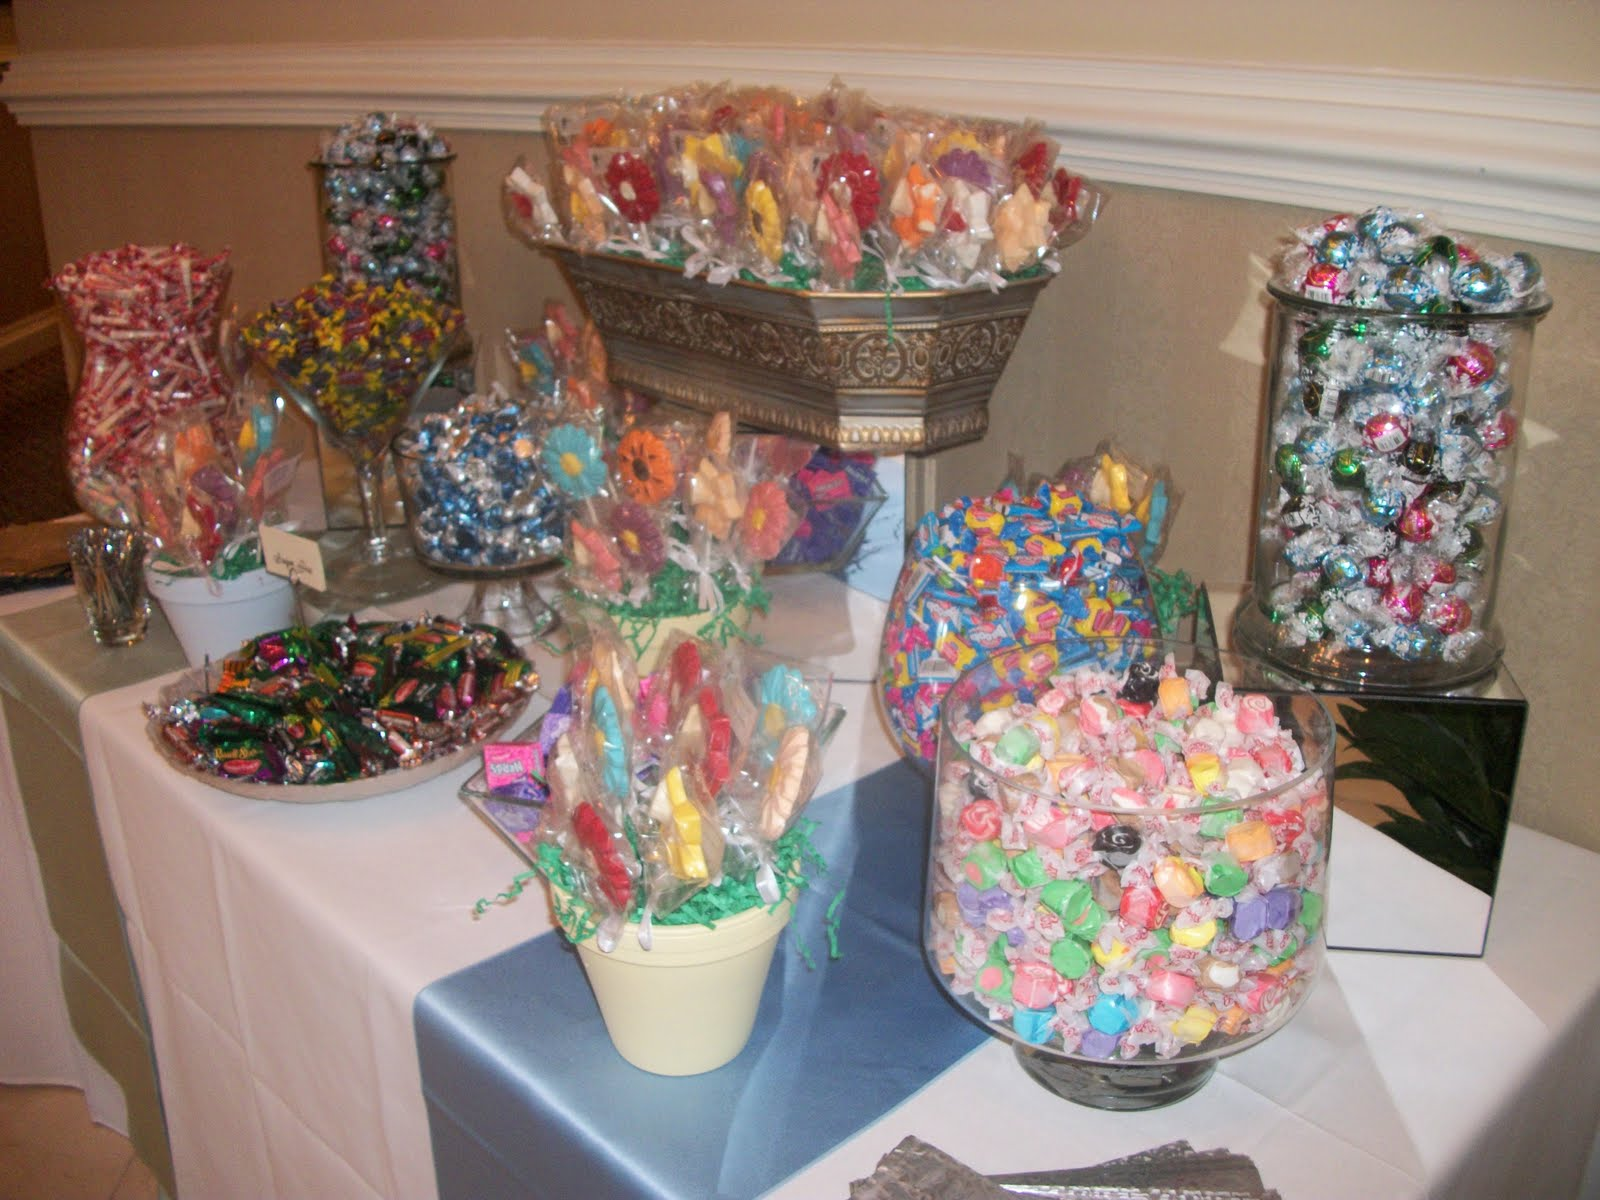 The addition of the candy bar